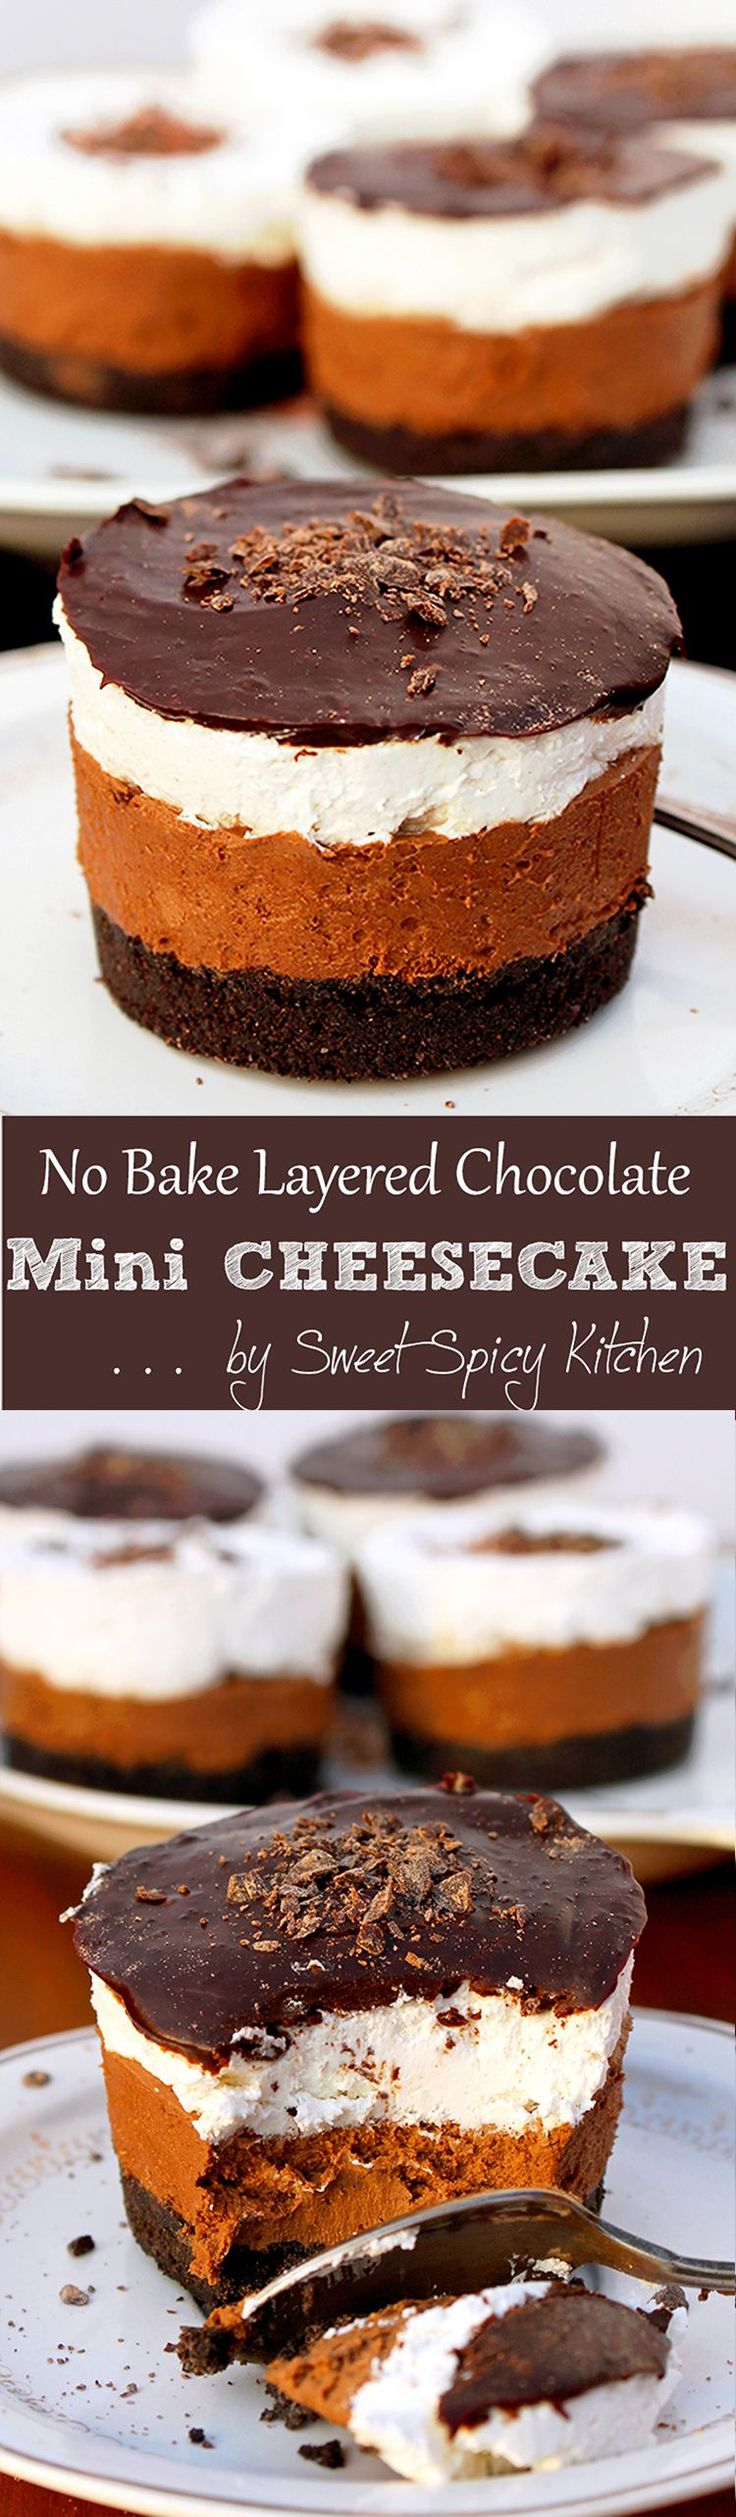 Chocolate, Oreo cookies, Cream Cheese, Heavy Cream.. I'm planning to make a special dessert recipe.. a delicious No Bake Layered Chocolate Mini Cheesecake..